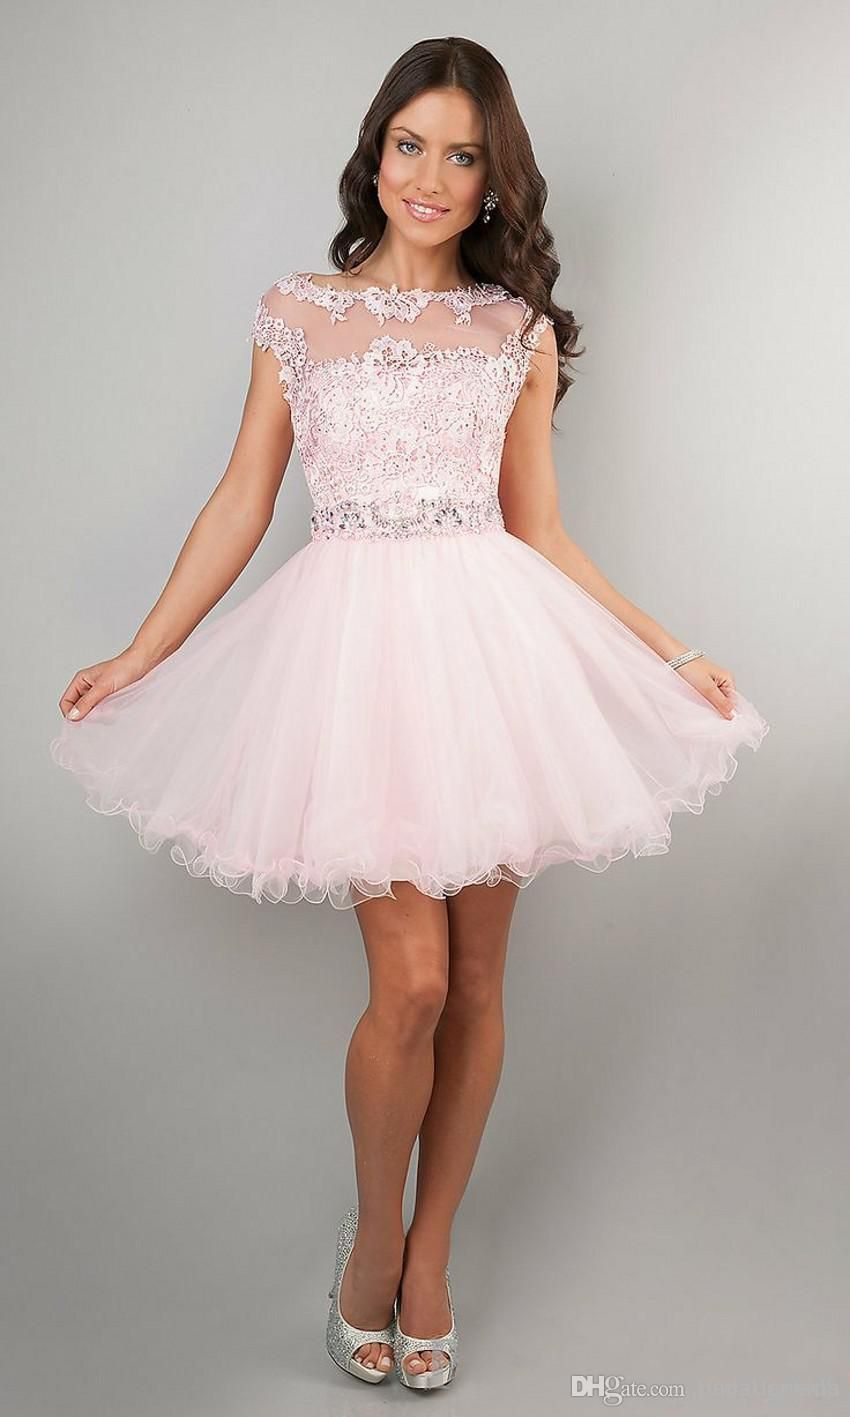 graduation dresses for 8th grade with sleeves - Google Search ... da27d2fbc